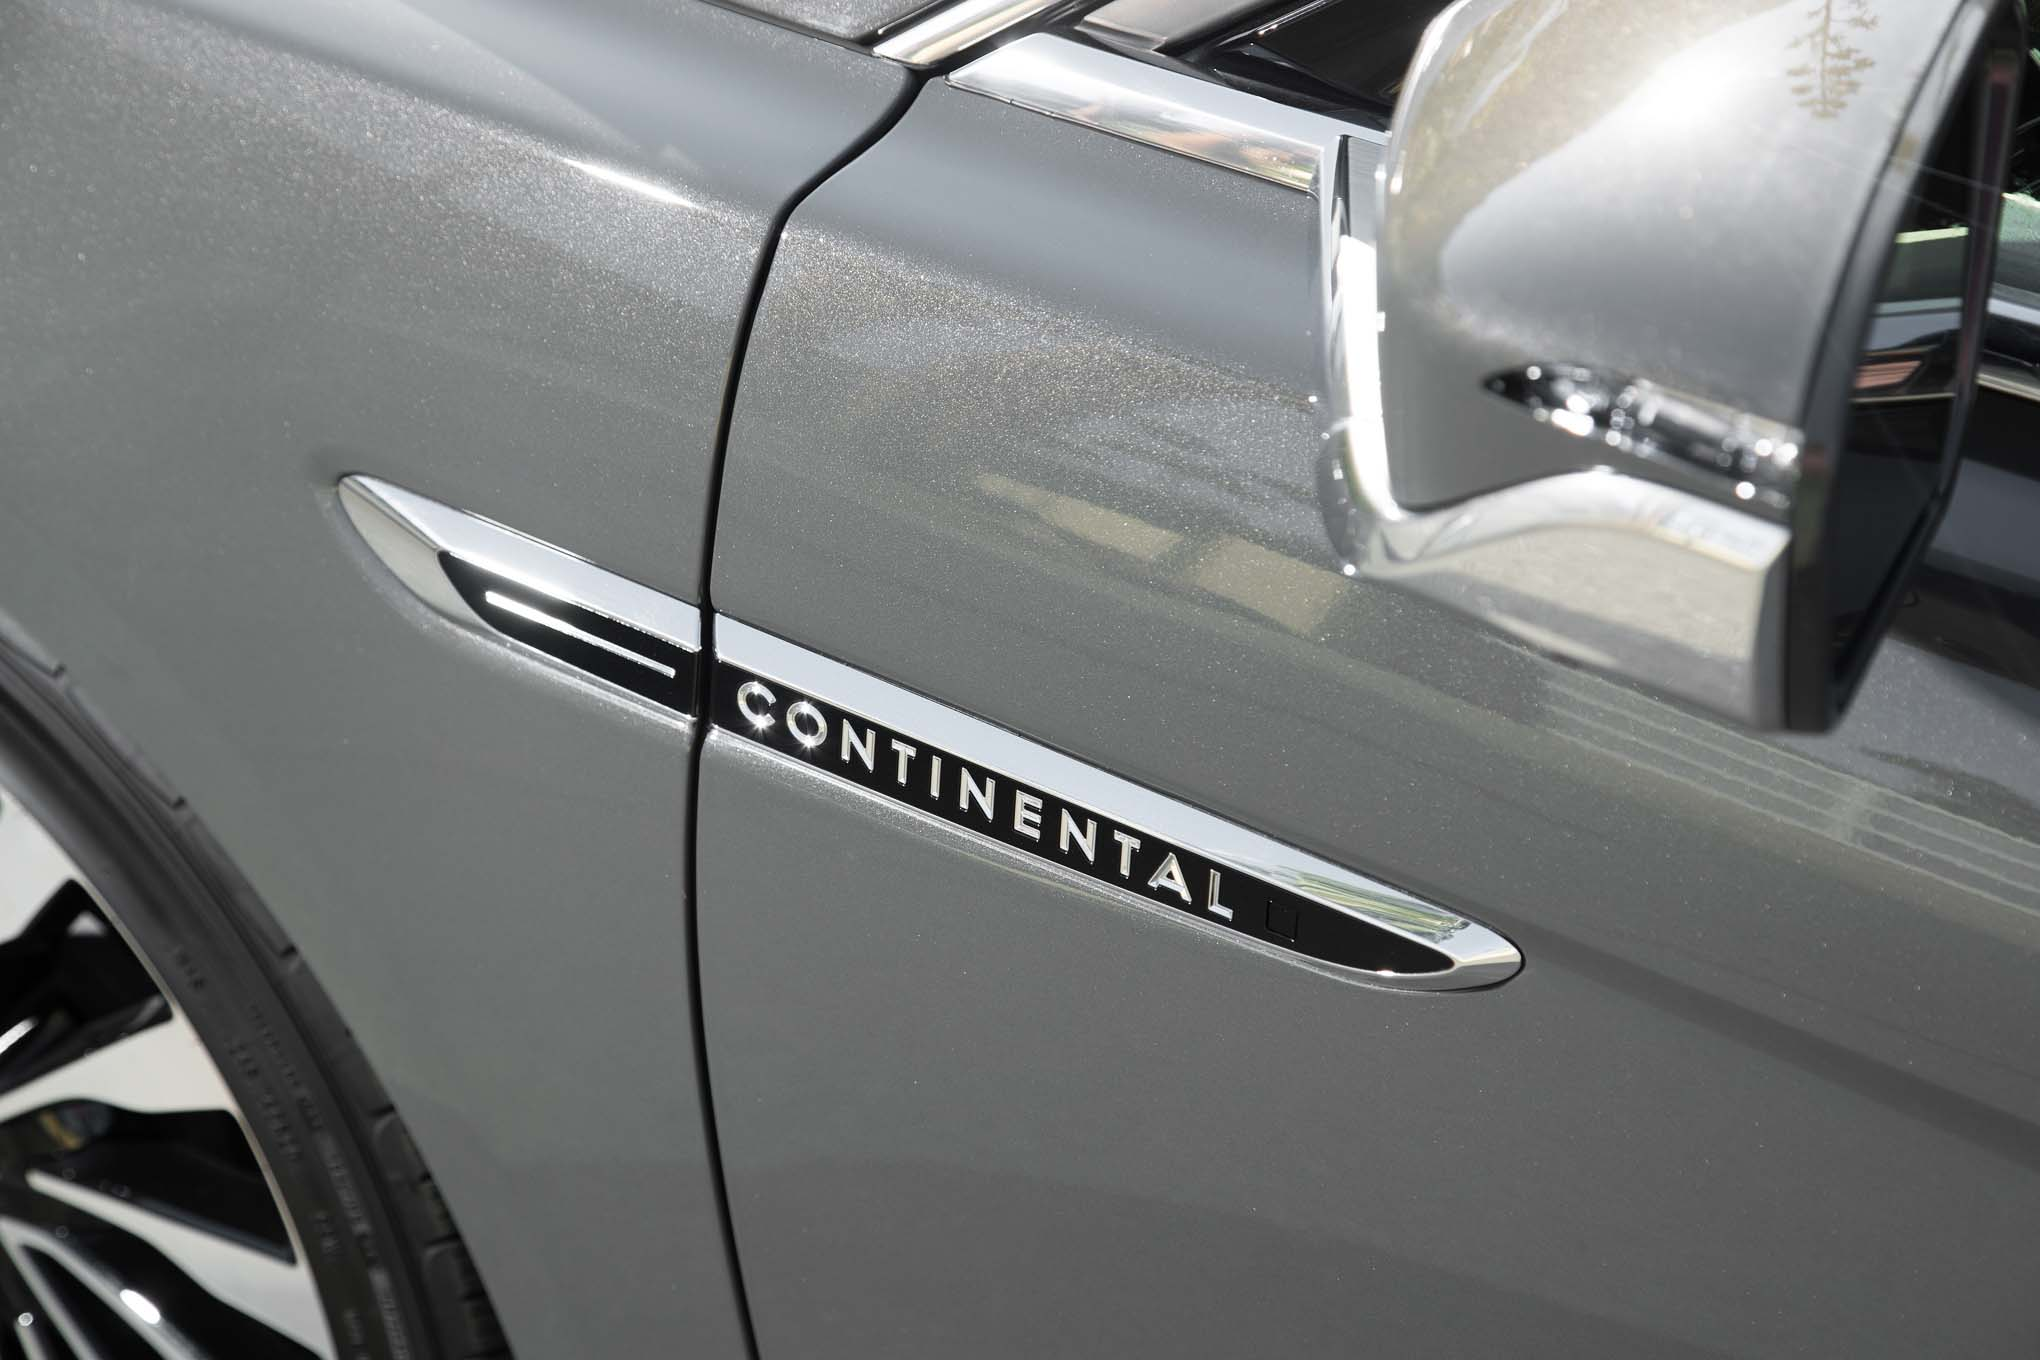 2017 Lincoln Continental Exterior View Side Badge (Photo 13 of 41)